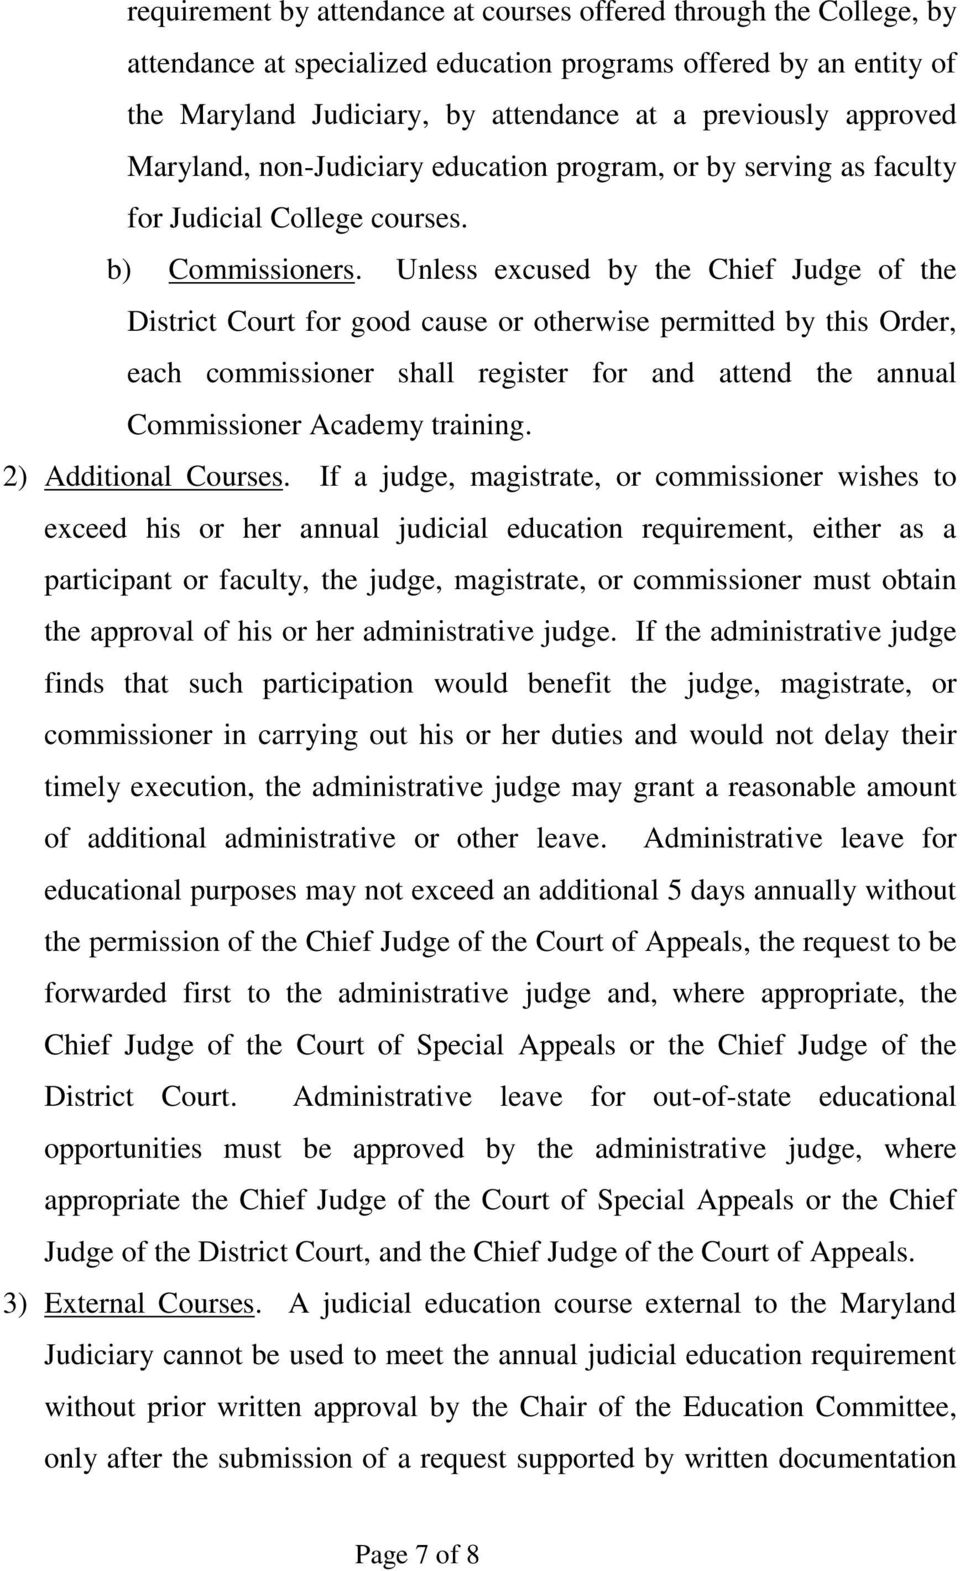 Unless excused by the Chief Judge of the District Court for good cause or otherwise permitted by this Order, each commissioner shall register for and attend the annual Commissioner Academy training.